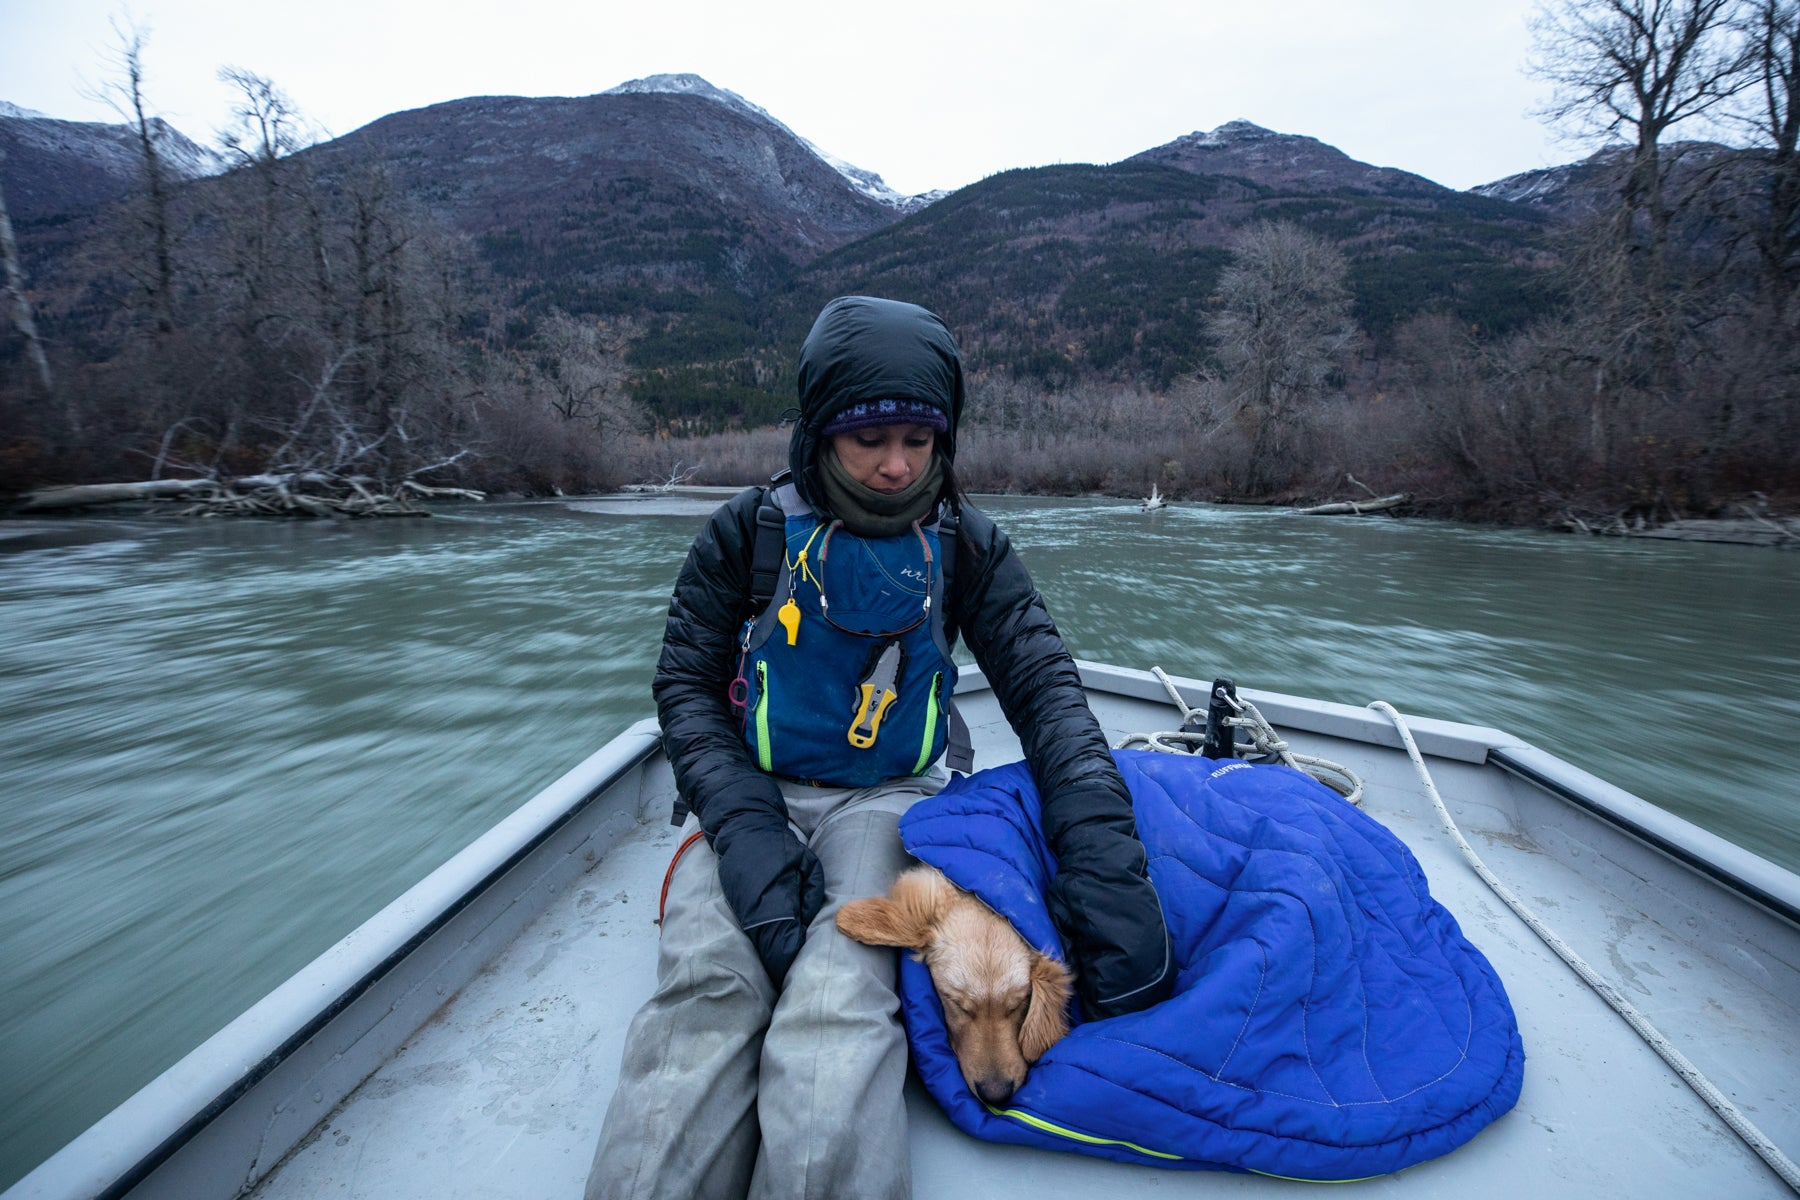 Sammy snuggles next to Chris on a highlands dog sleeping bag in the bow of the boat.